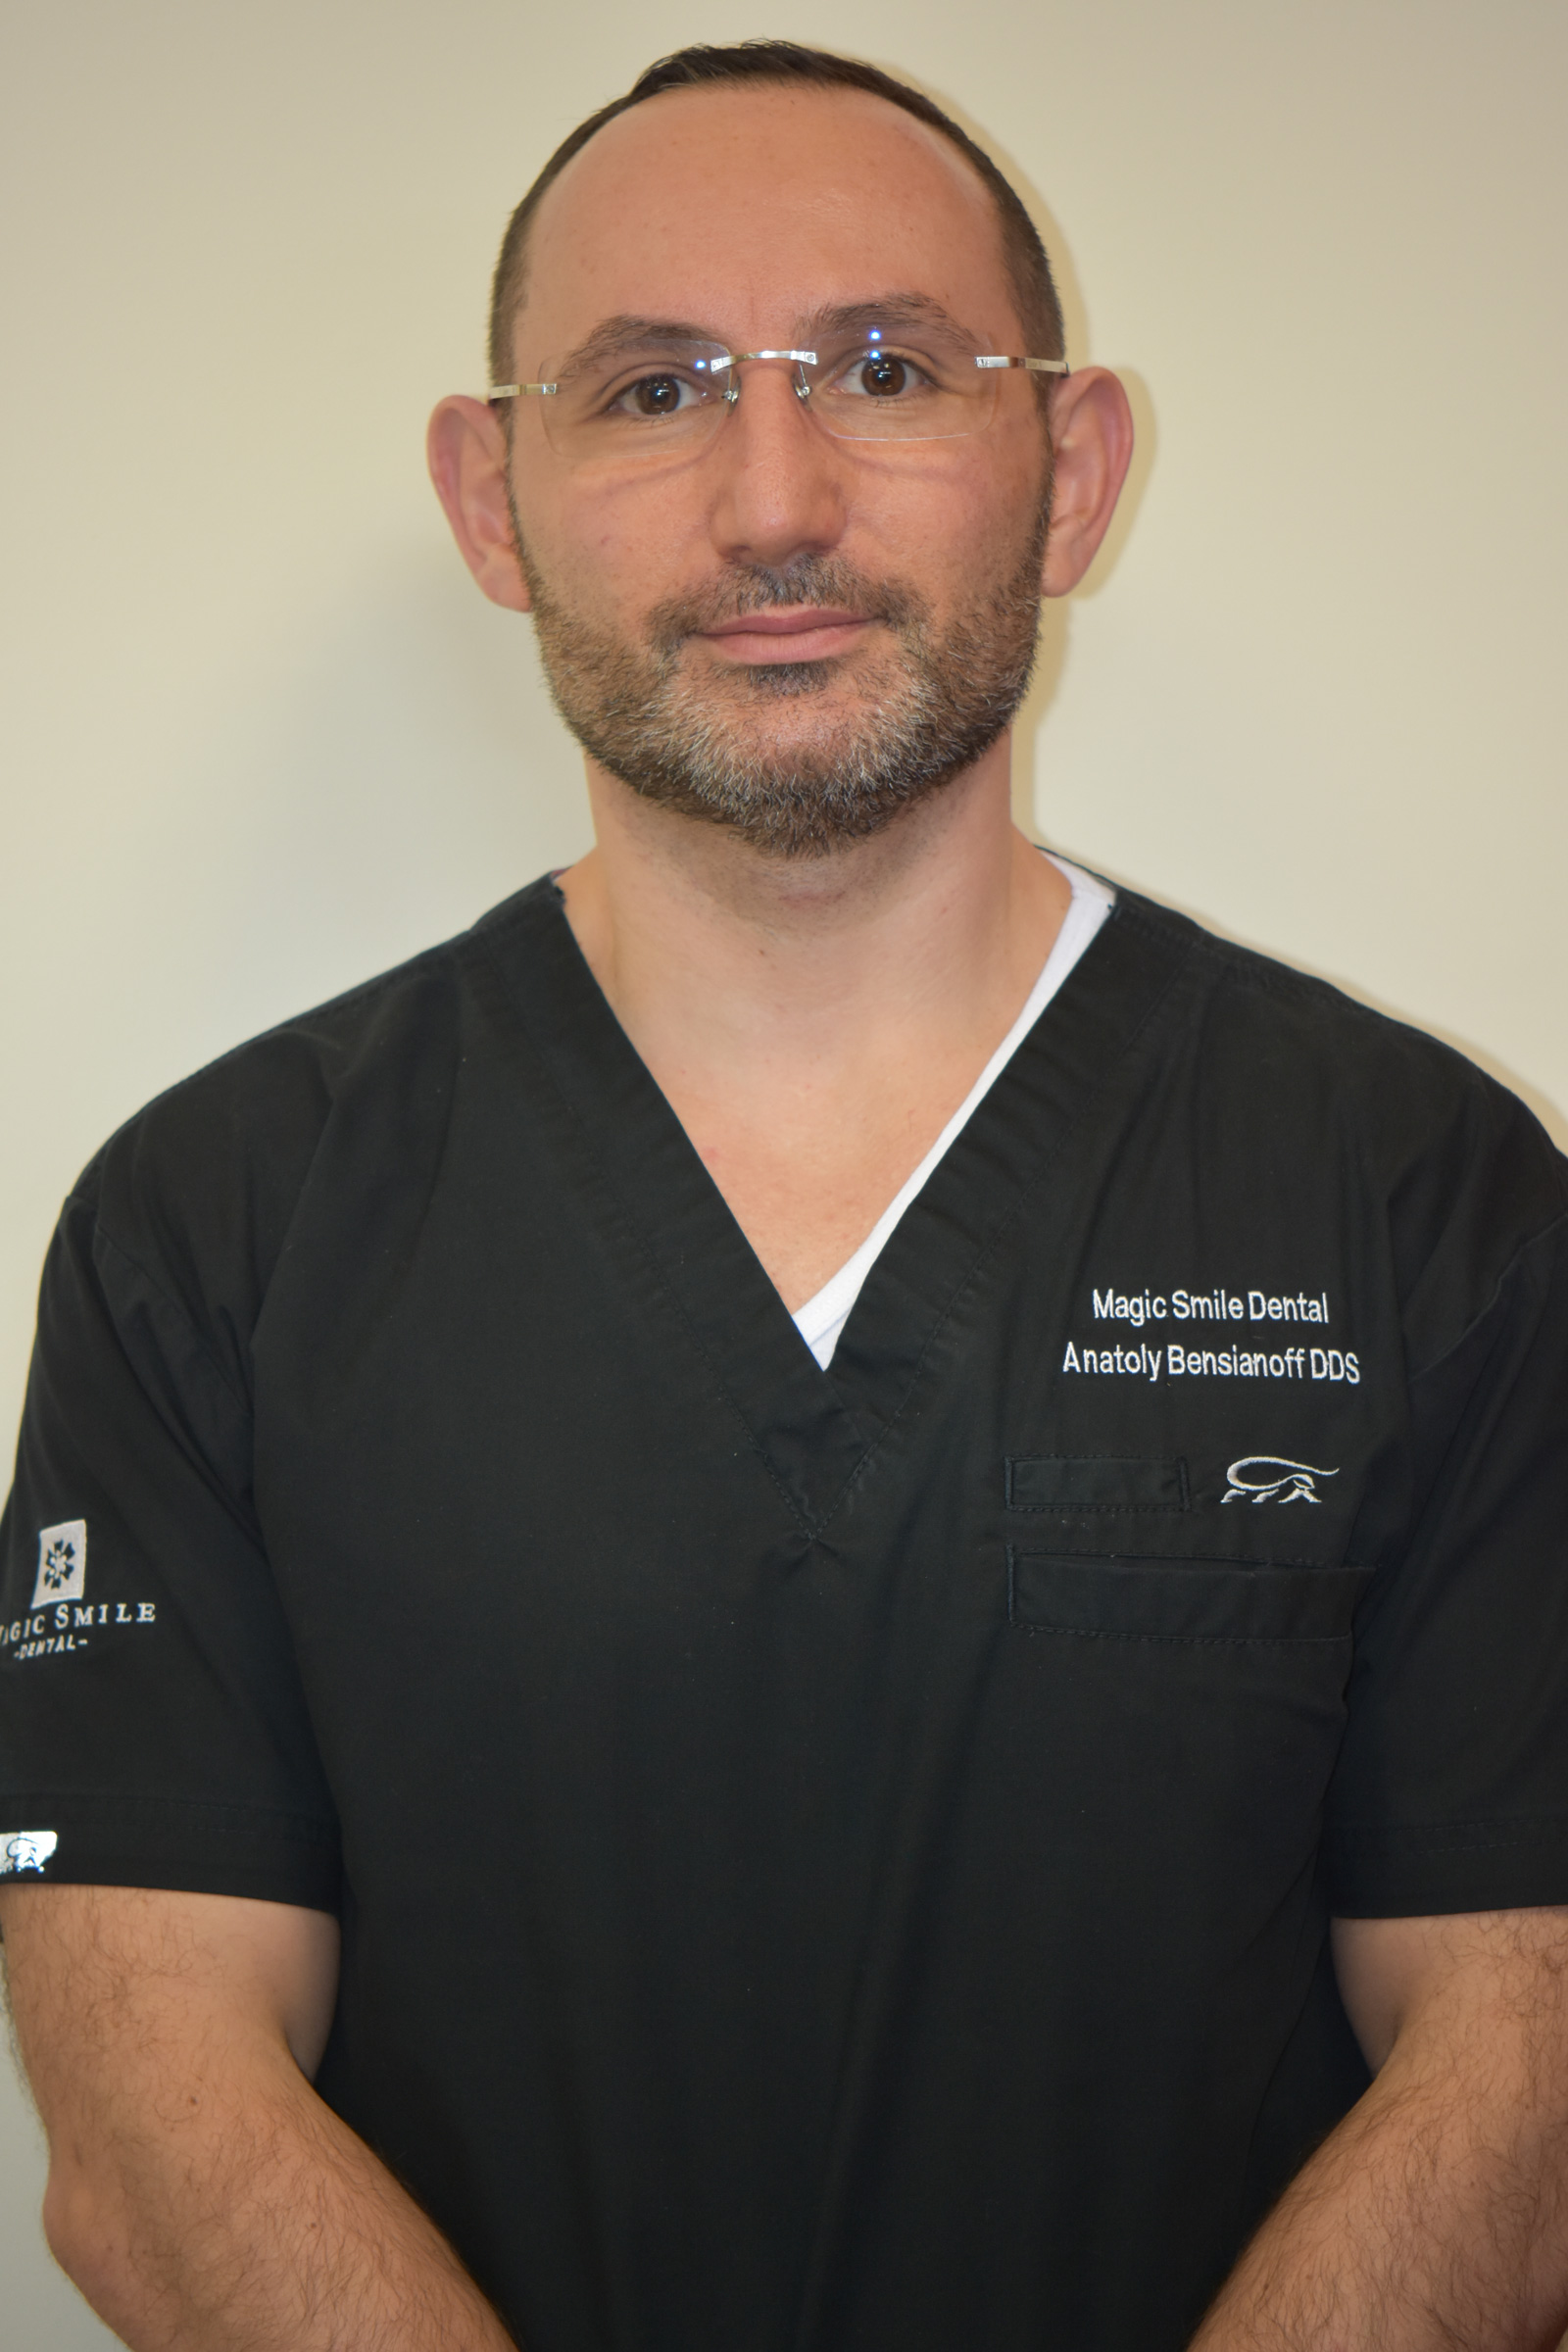 Anatoly Bensianoff DDS - Dr. Anatoly Bensianoff earned his Doctor of Dental Surgery Degree from the NYU College of Dentistry in 2001 and completed his residency at Staten Island Hospital in 2001. Drawn to dentistry after volunteering as a resident's assistant in a dental clinic, Dr. Bensianoff loves to help patients alleviate pain and educate them, giving them the tools they need to maintain a healthy mouth for their lifetime.Learn more about our practice